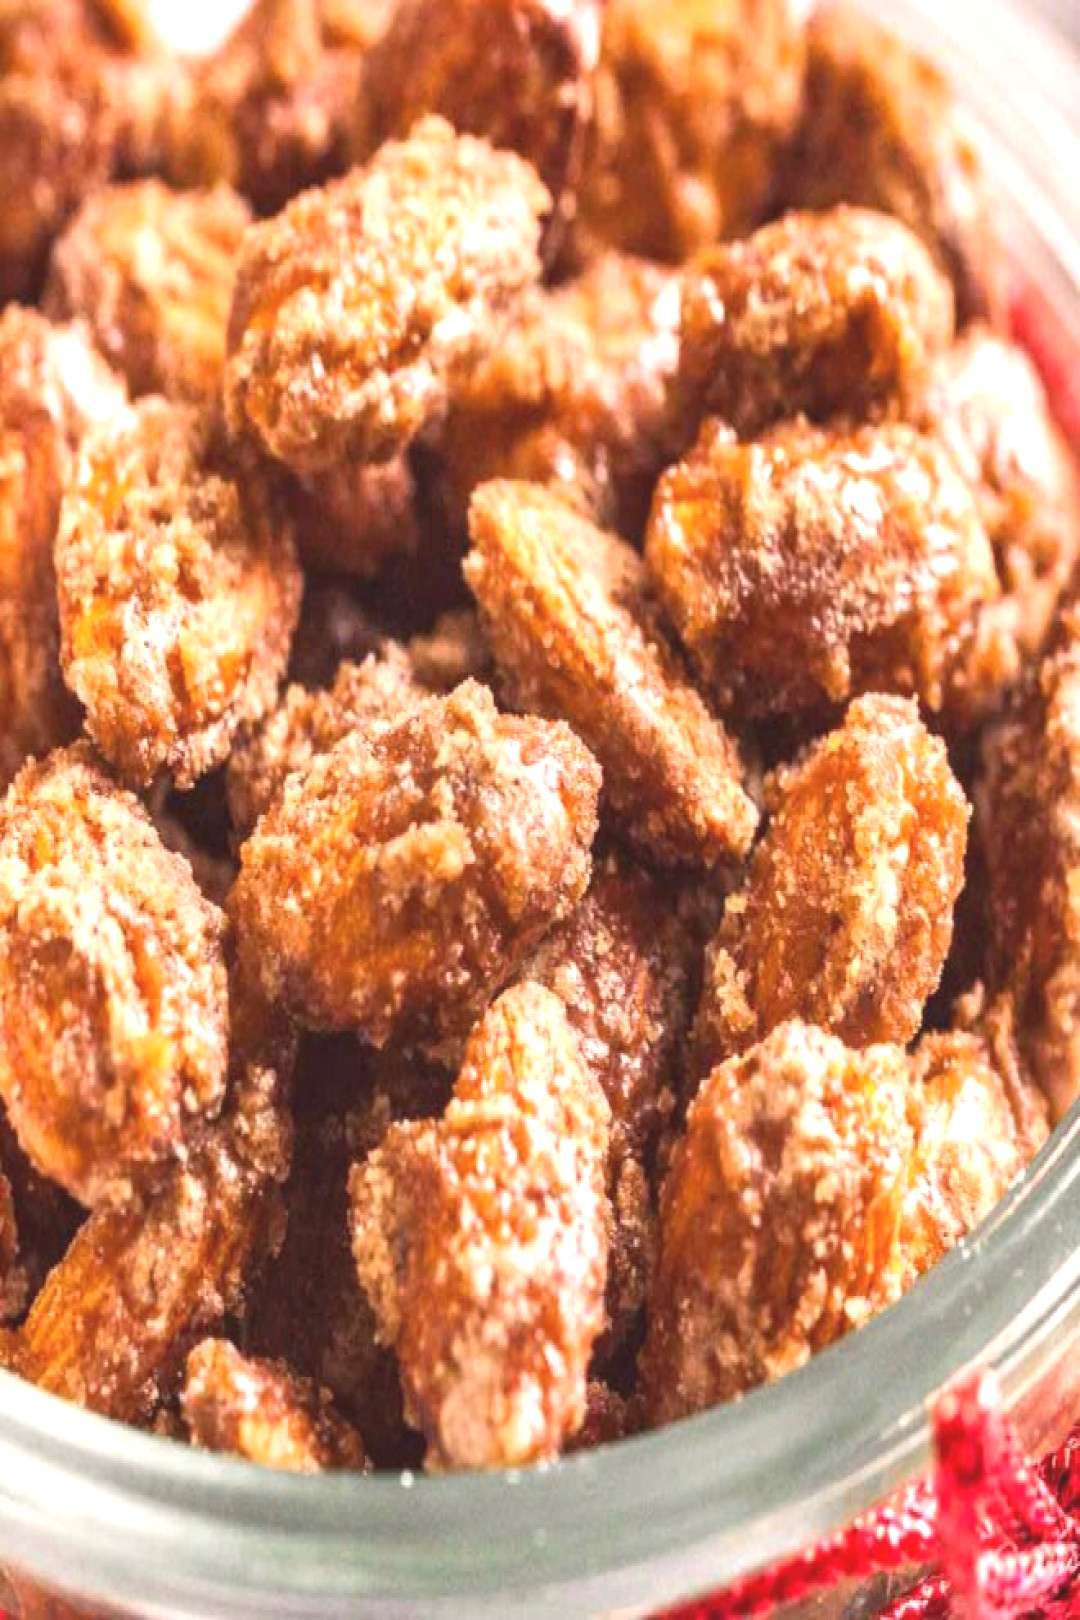 Easy Cinnamon Candied Almonds are sweet, crunchy and make your house smell amazing! These roasted n